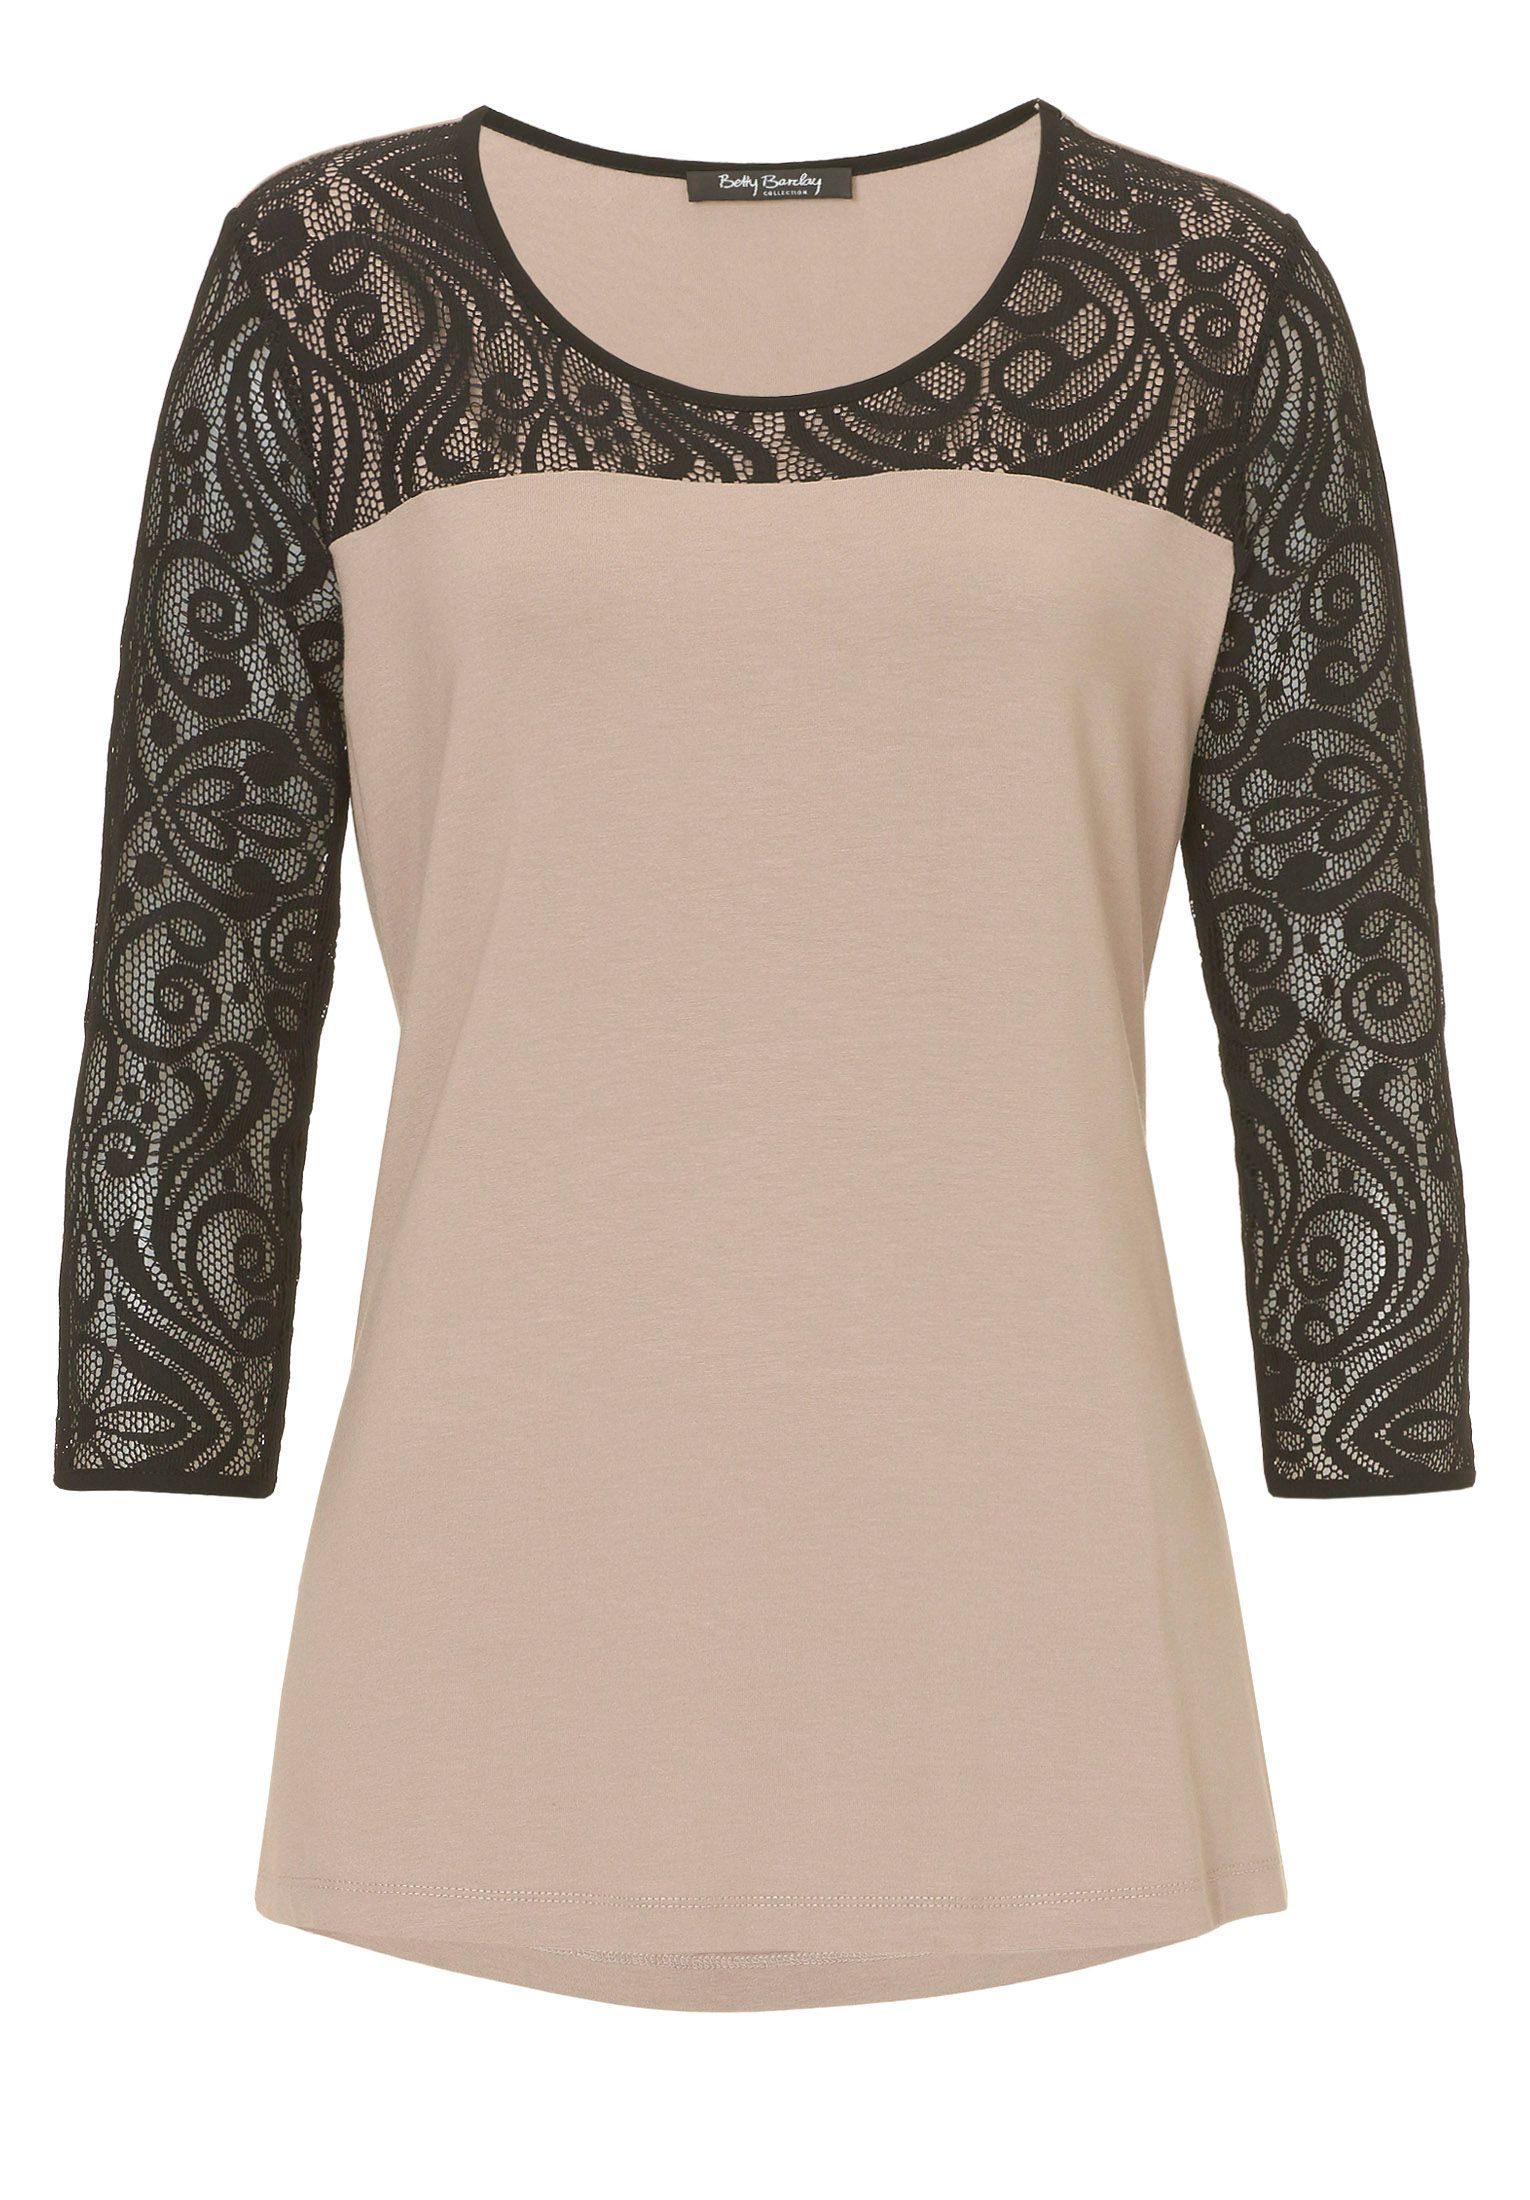 Lyst betty barclay jersey and lace top in black for Betty barclay